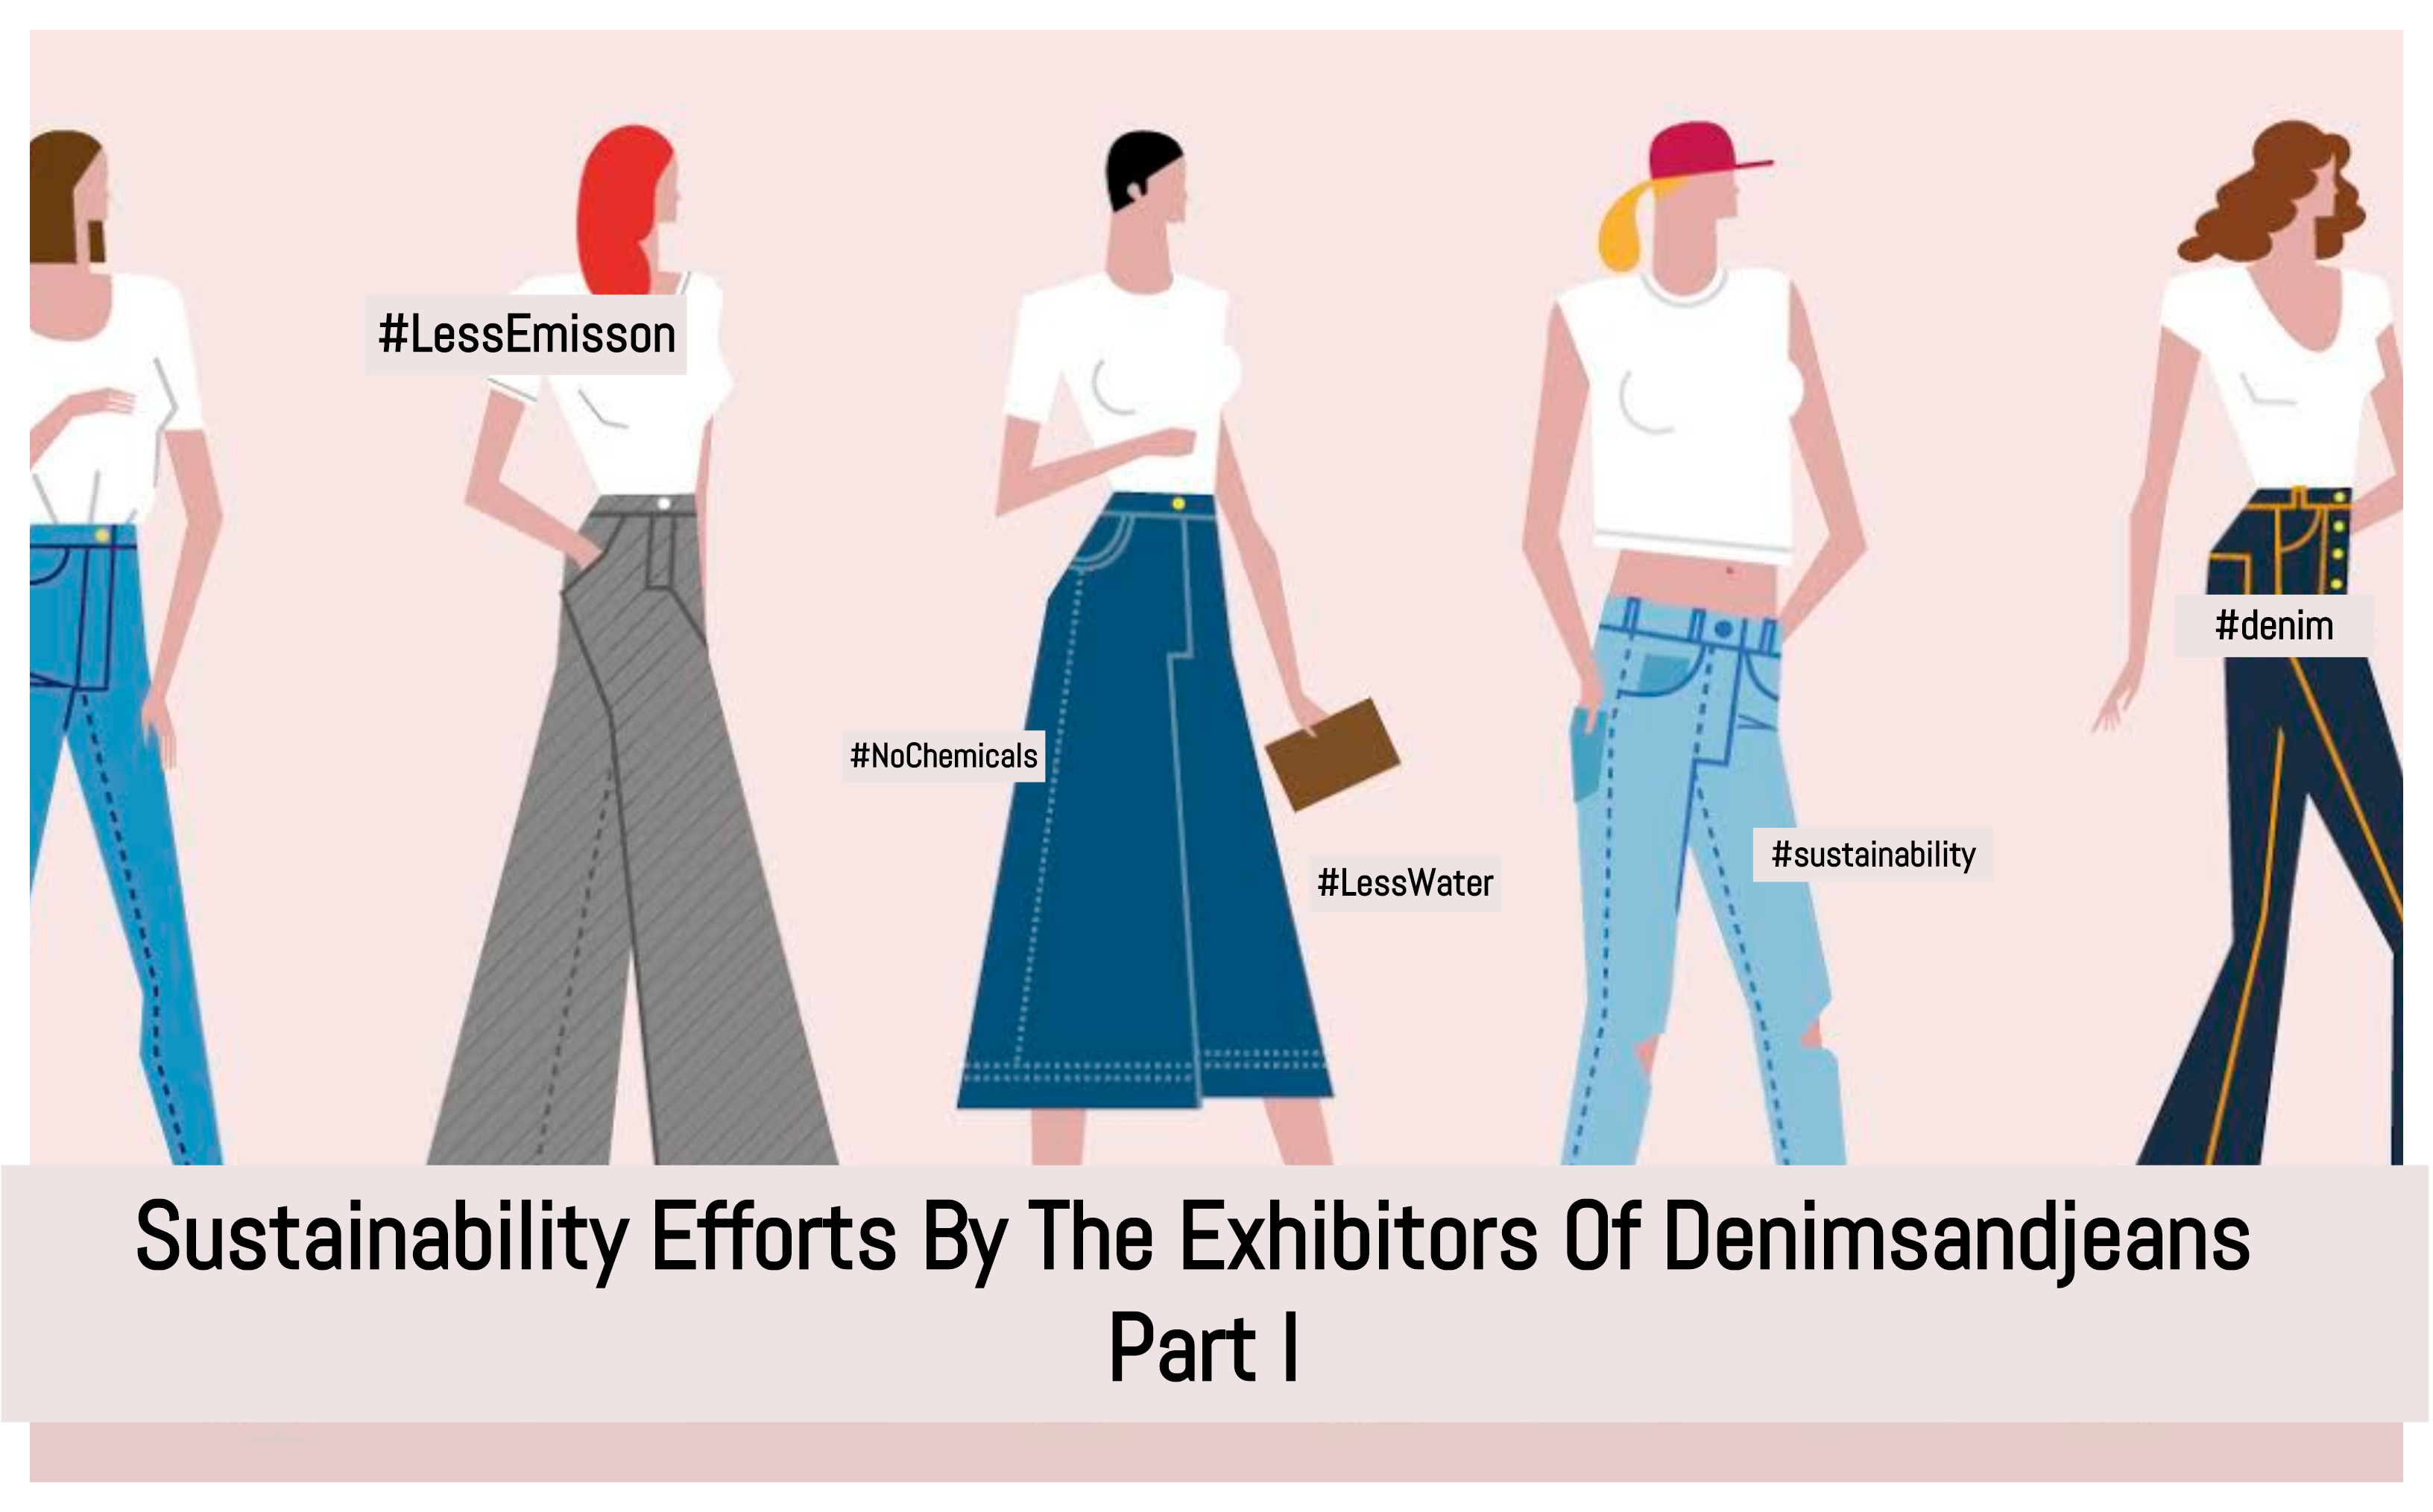 Sustainability Efforts By The Exhibitors Of Denimsandjeans – Part I